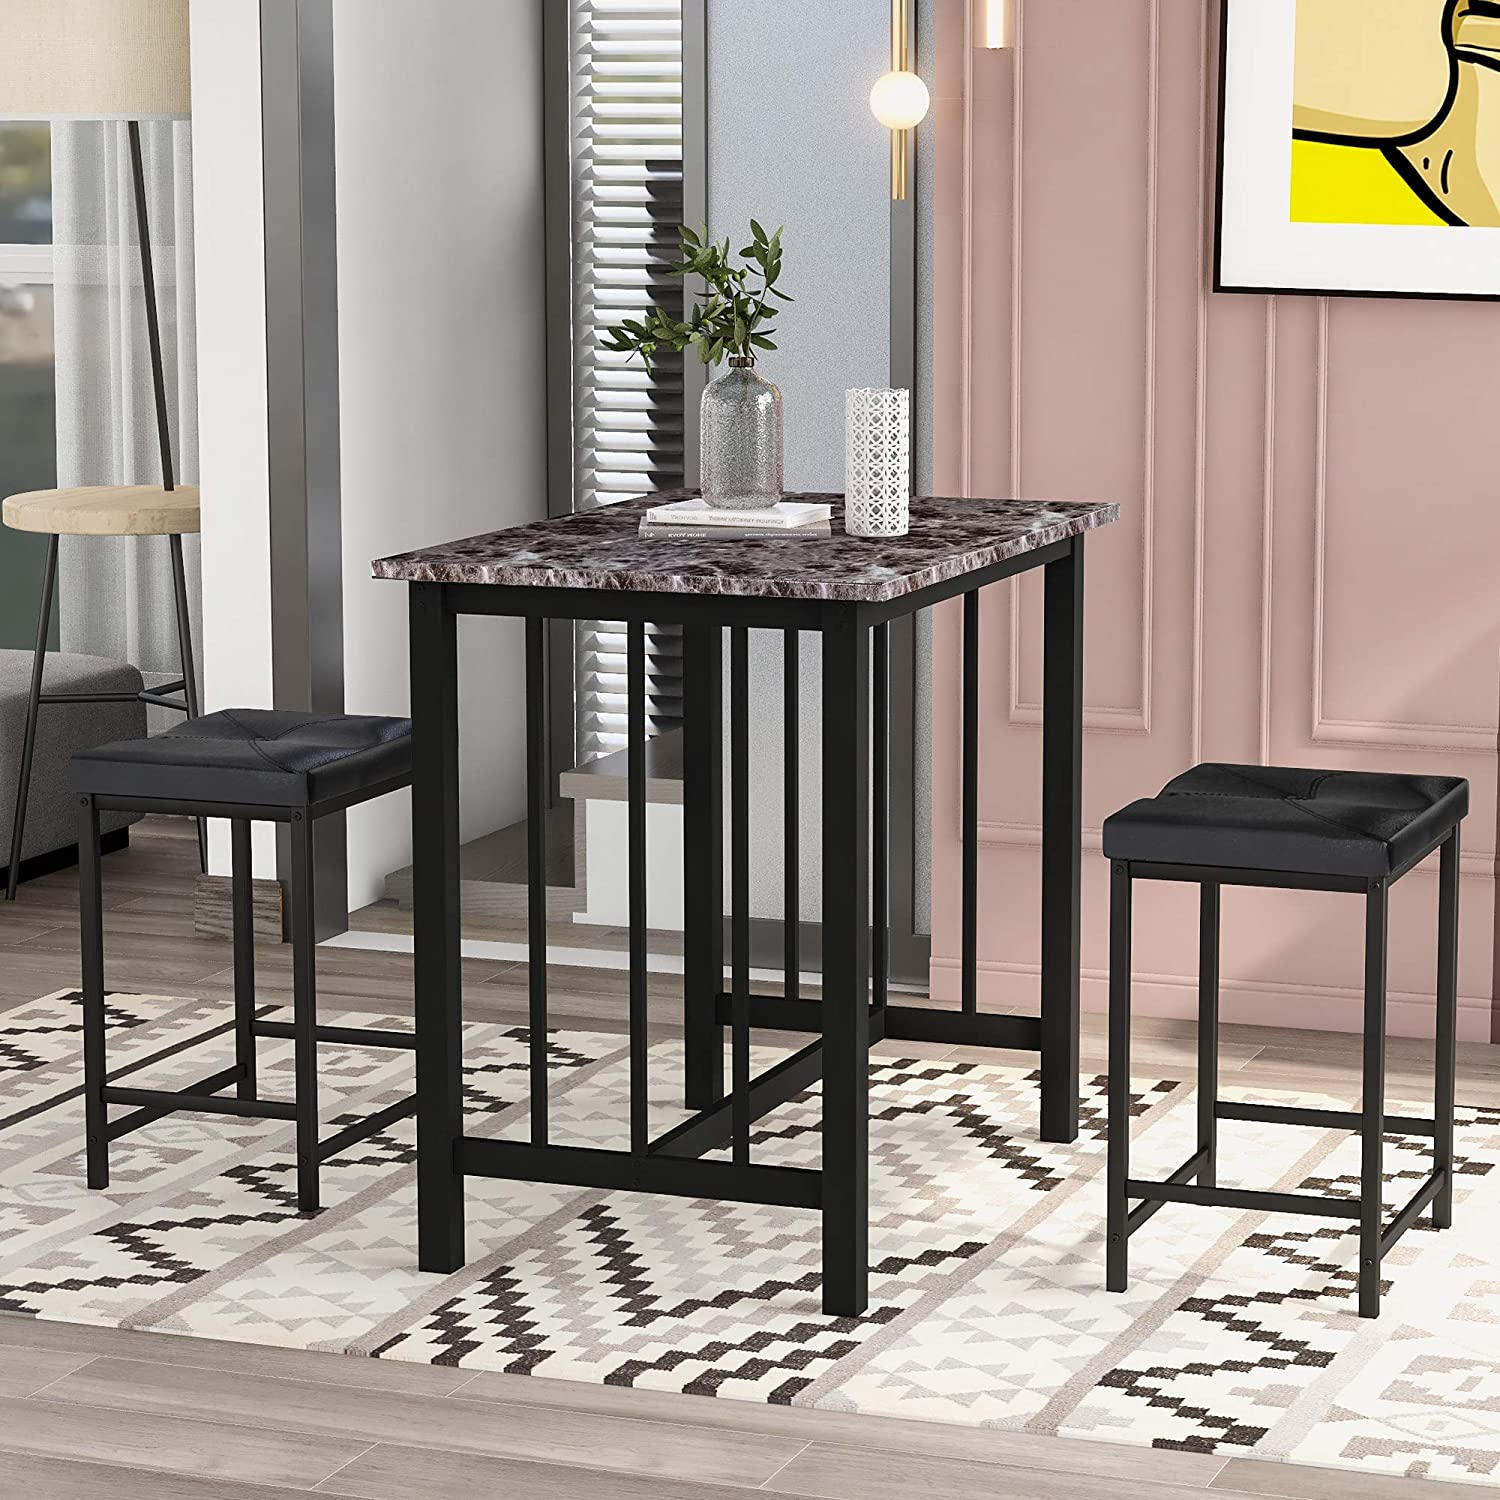 3-Piece Dining Table Set - Kitchen Counter Height Dining Set, Bar Table with 2 Bar Stools Perfect for Kitchen, Breakfast Nook, Bar, Living Room